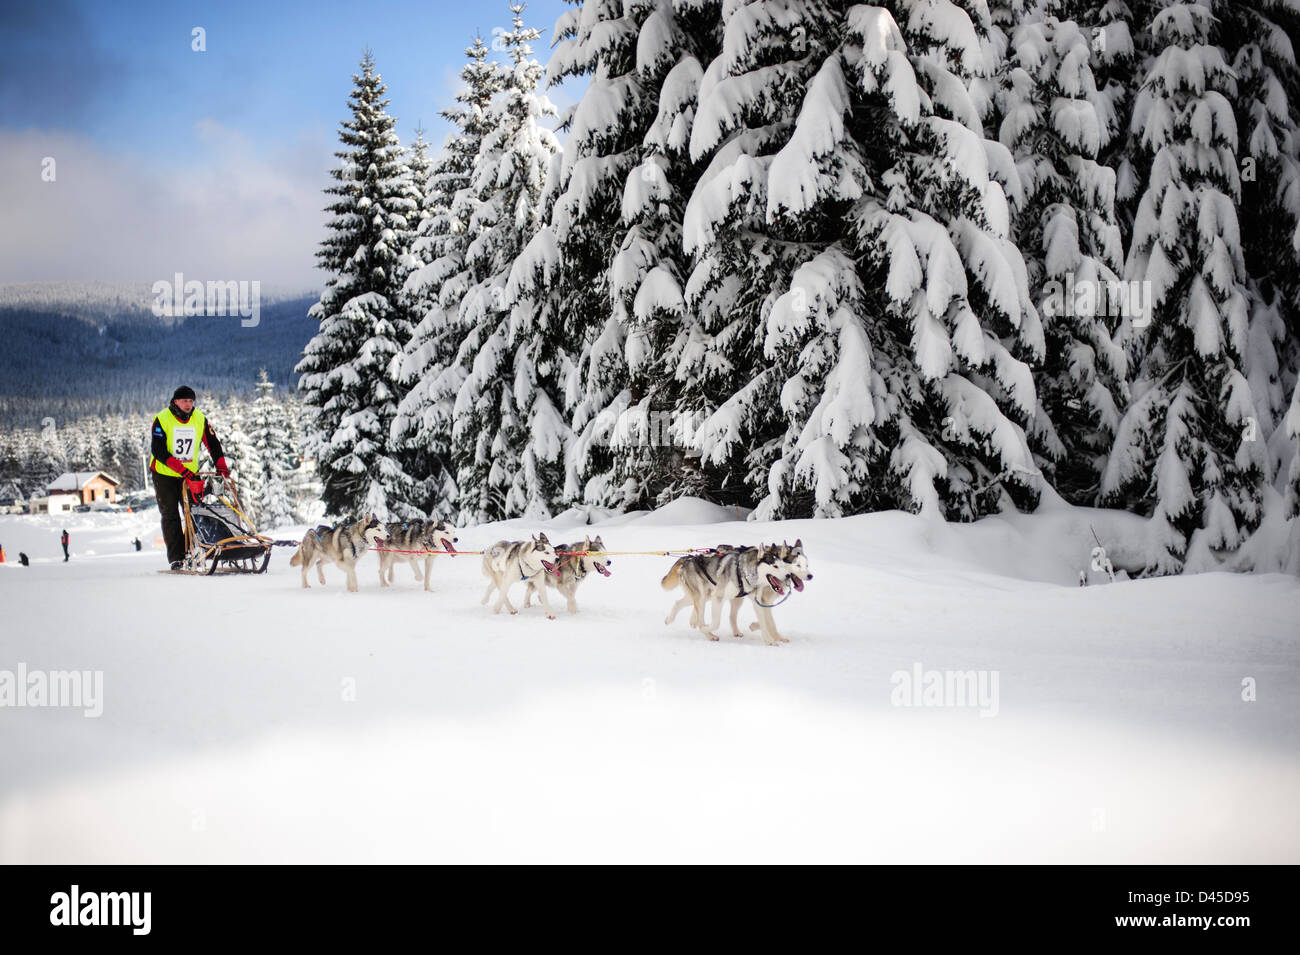 A sled dog participant team racing for the 2013 Border Rush competition in the Izery mountains, Poland. - Stock Image